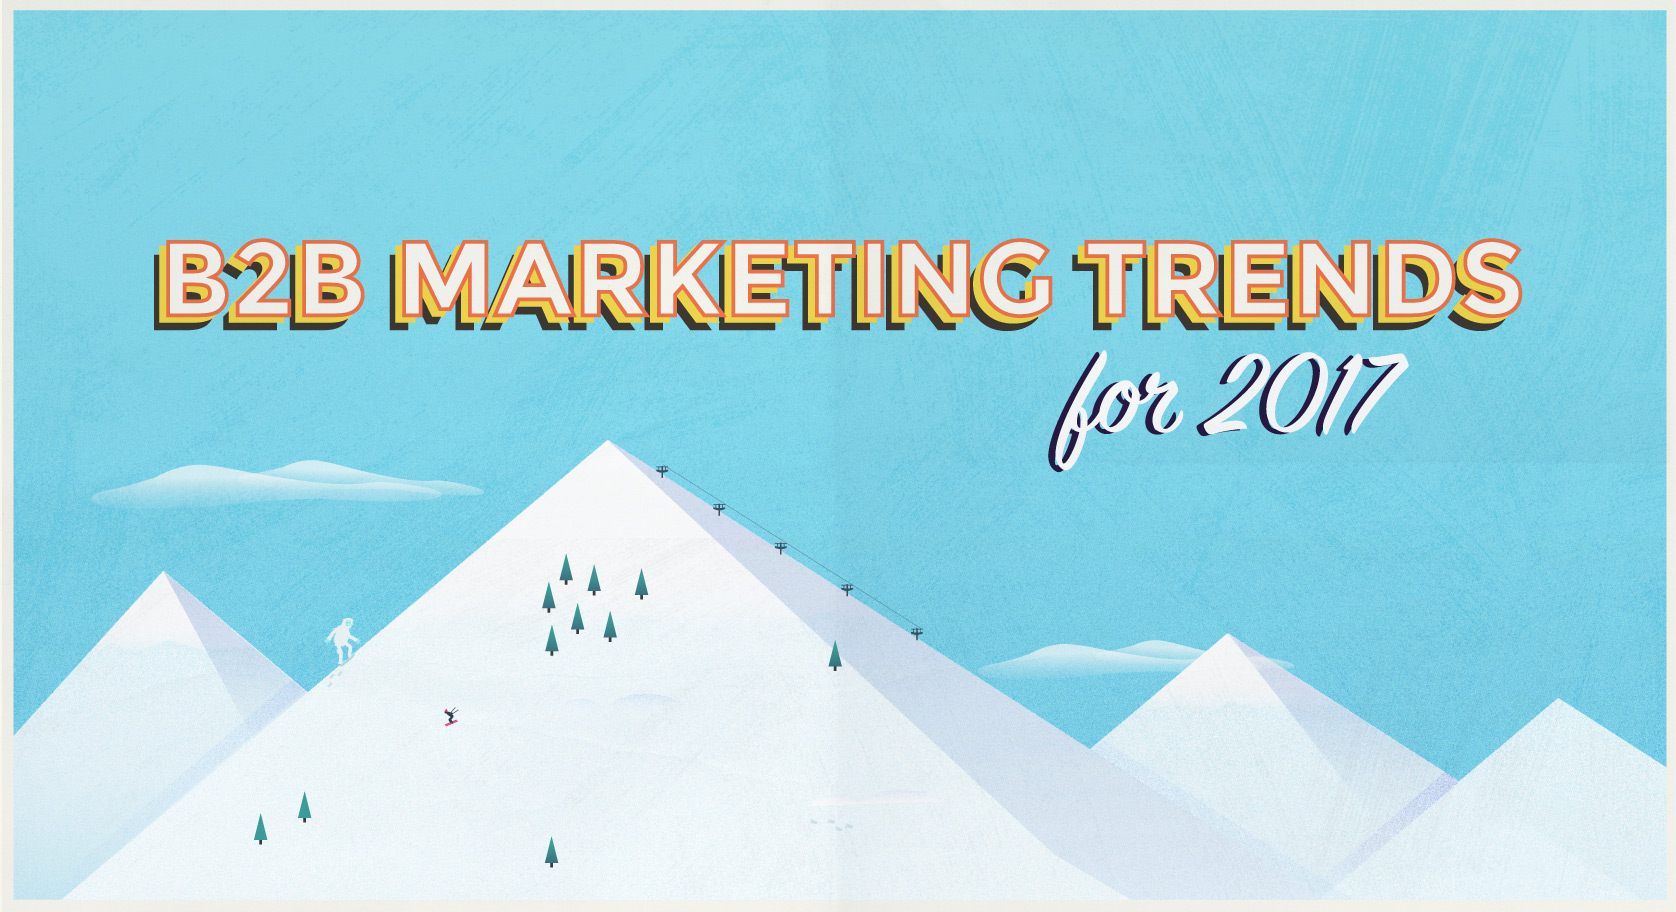 B2B Marketing Trends 2017